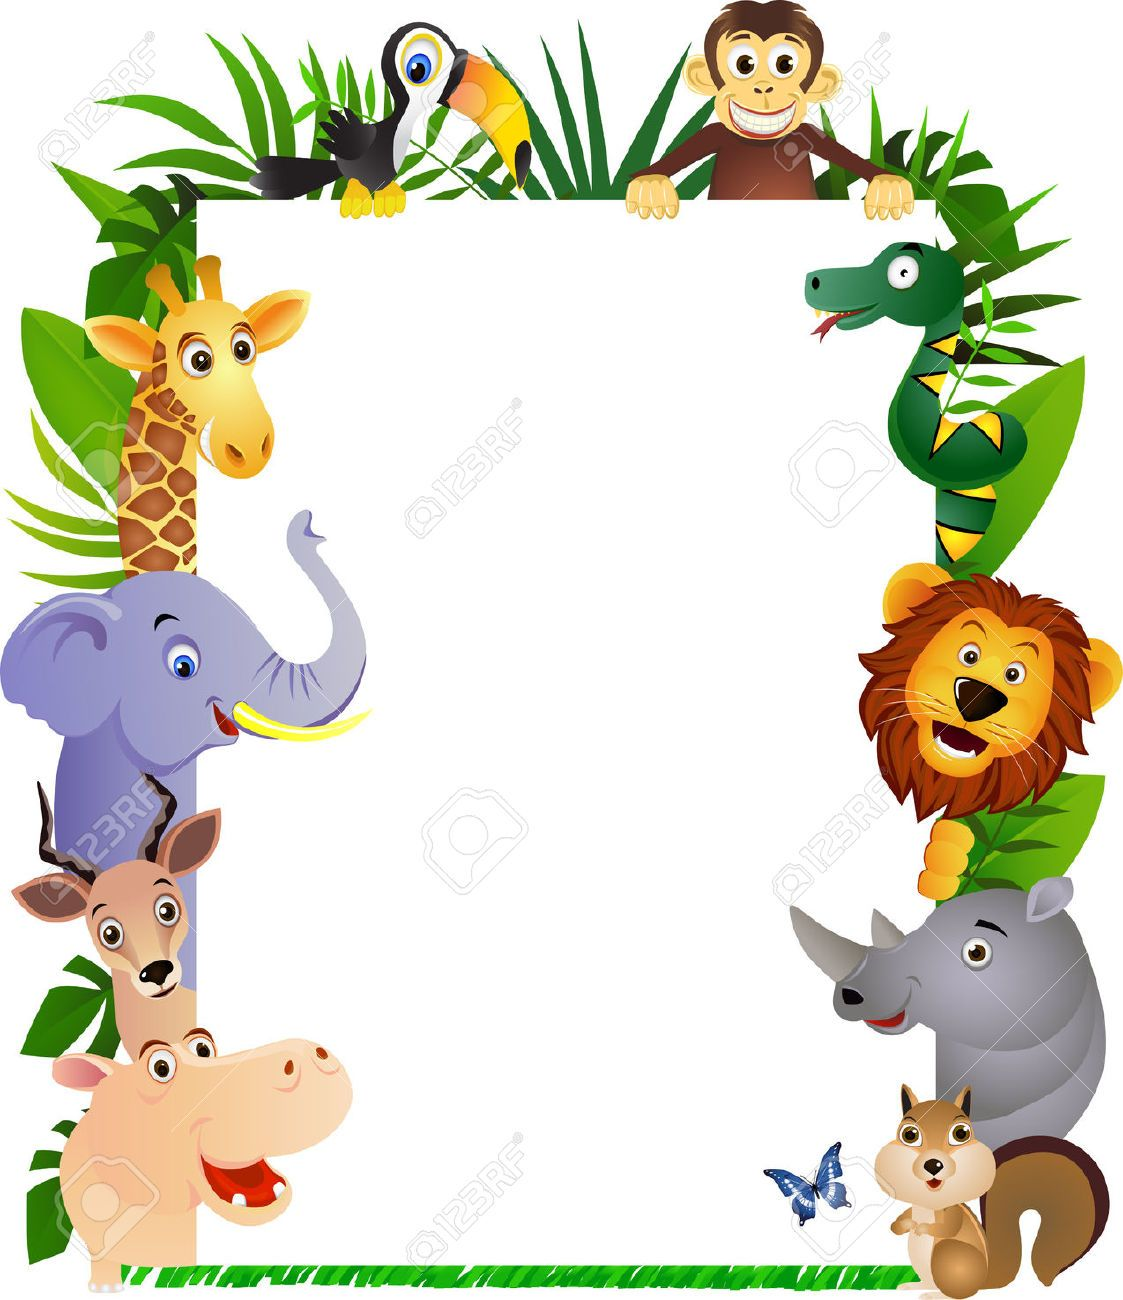 jungle leaves border Google Search Clip art borders